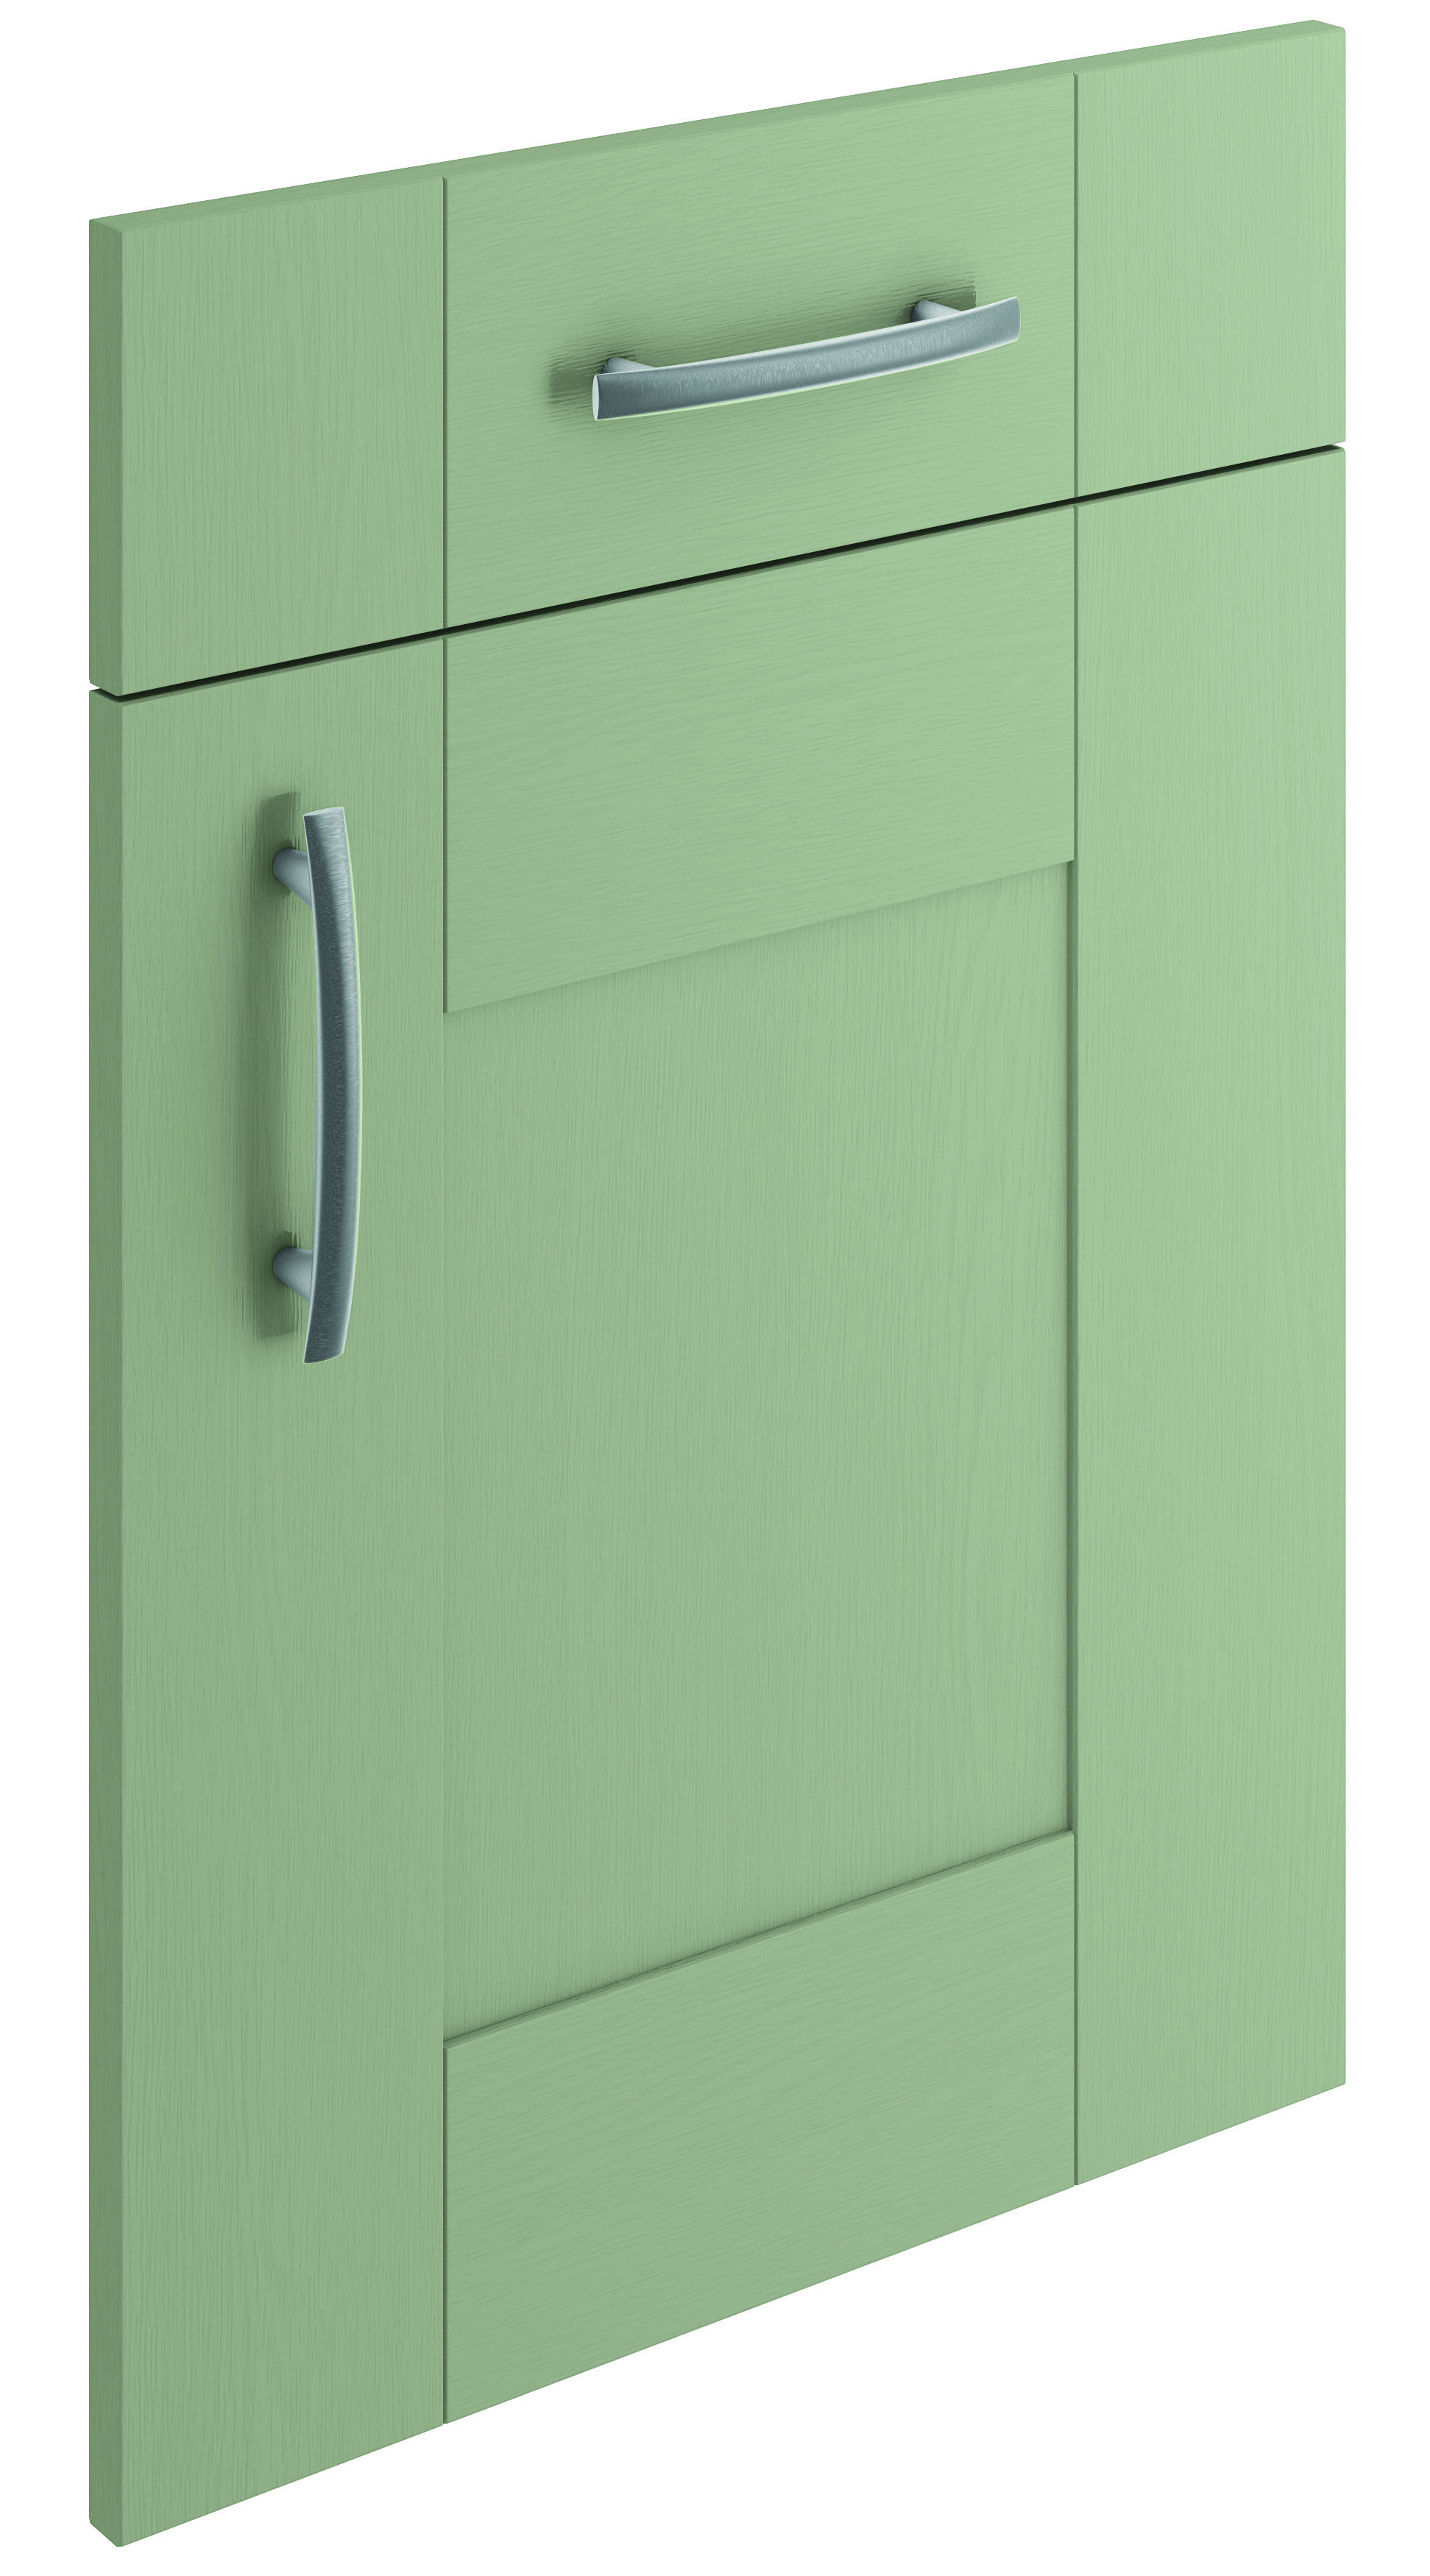 Mirano Cartmel Kitchen Painted Traditional Classic Timber Oak Matte French Grey Tongue Groove Shaker Door